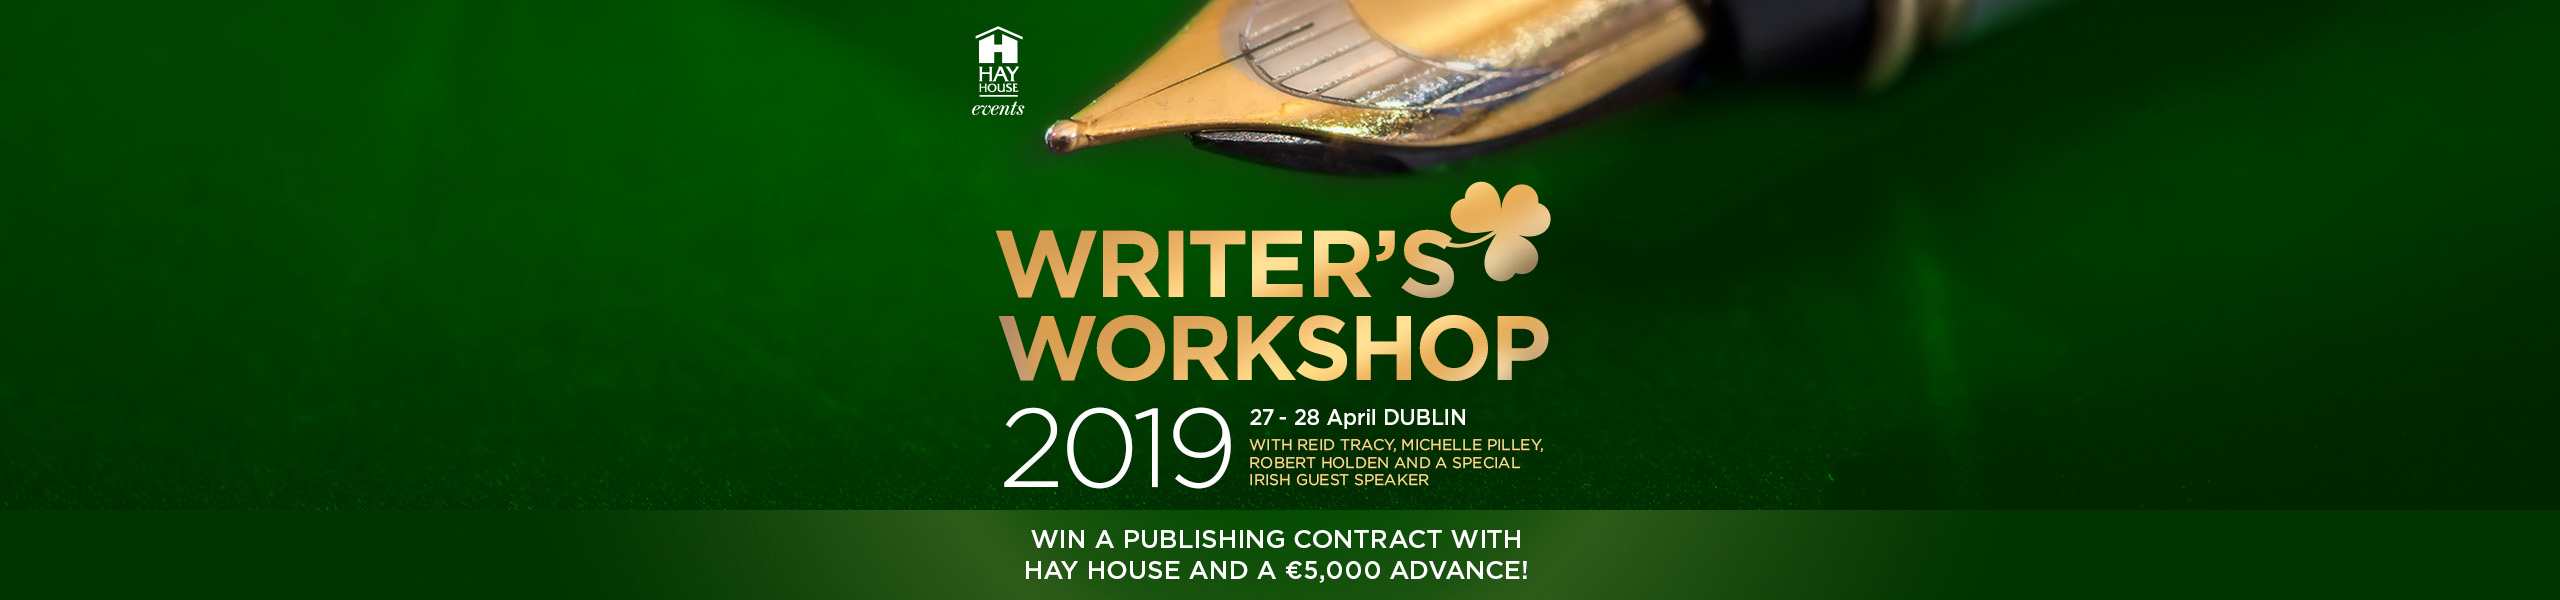 Writer's Workshop 2019 Dublin